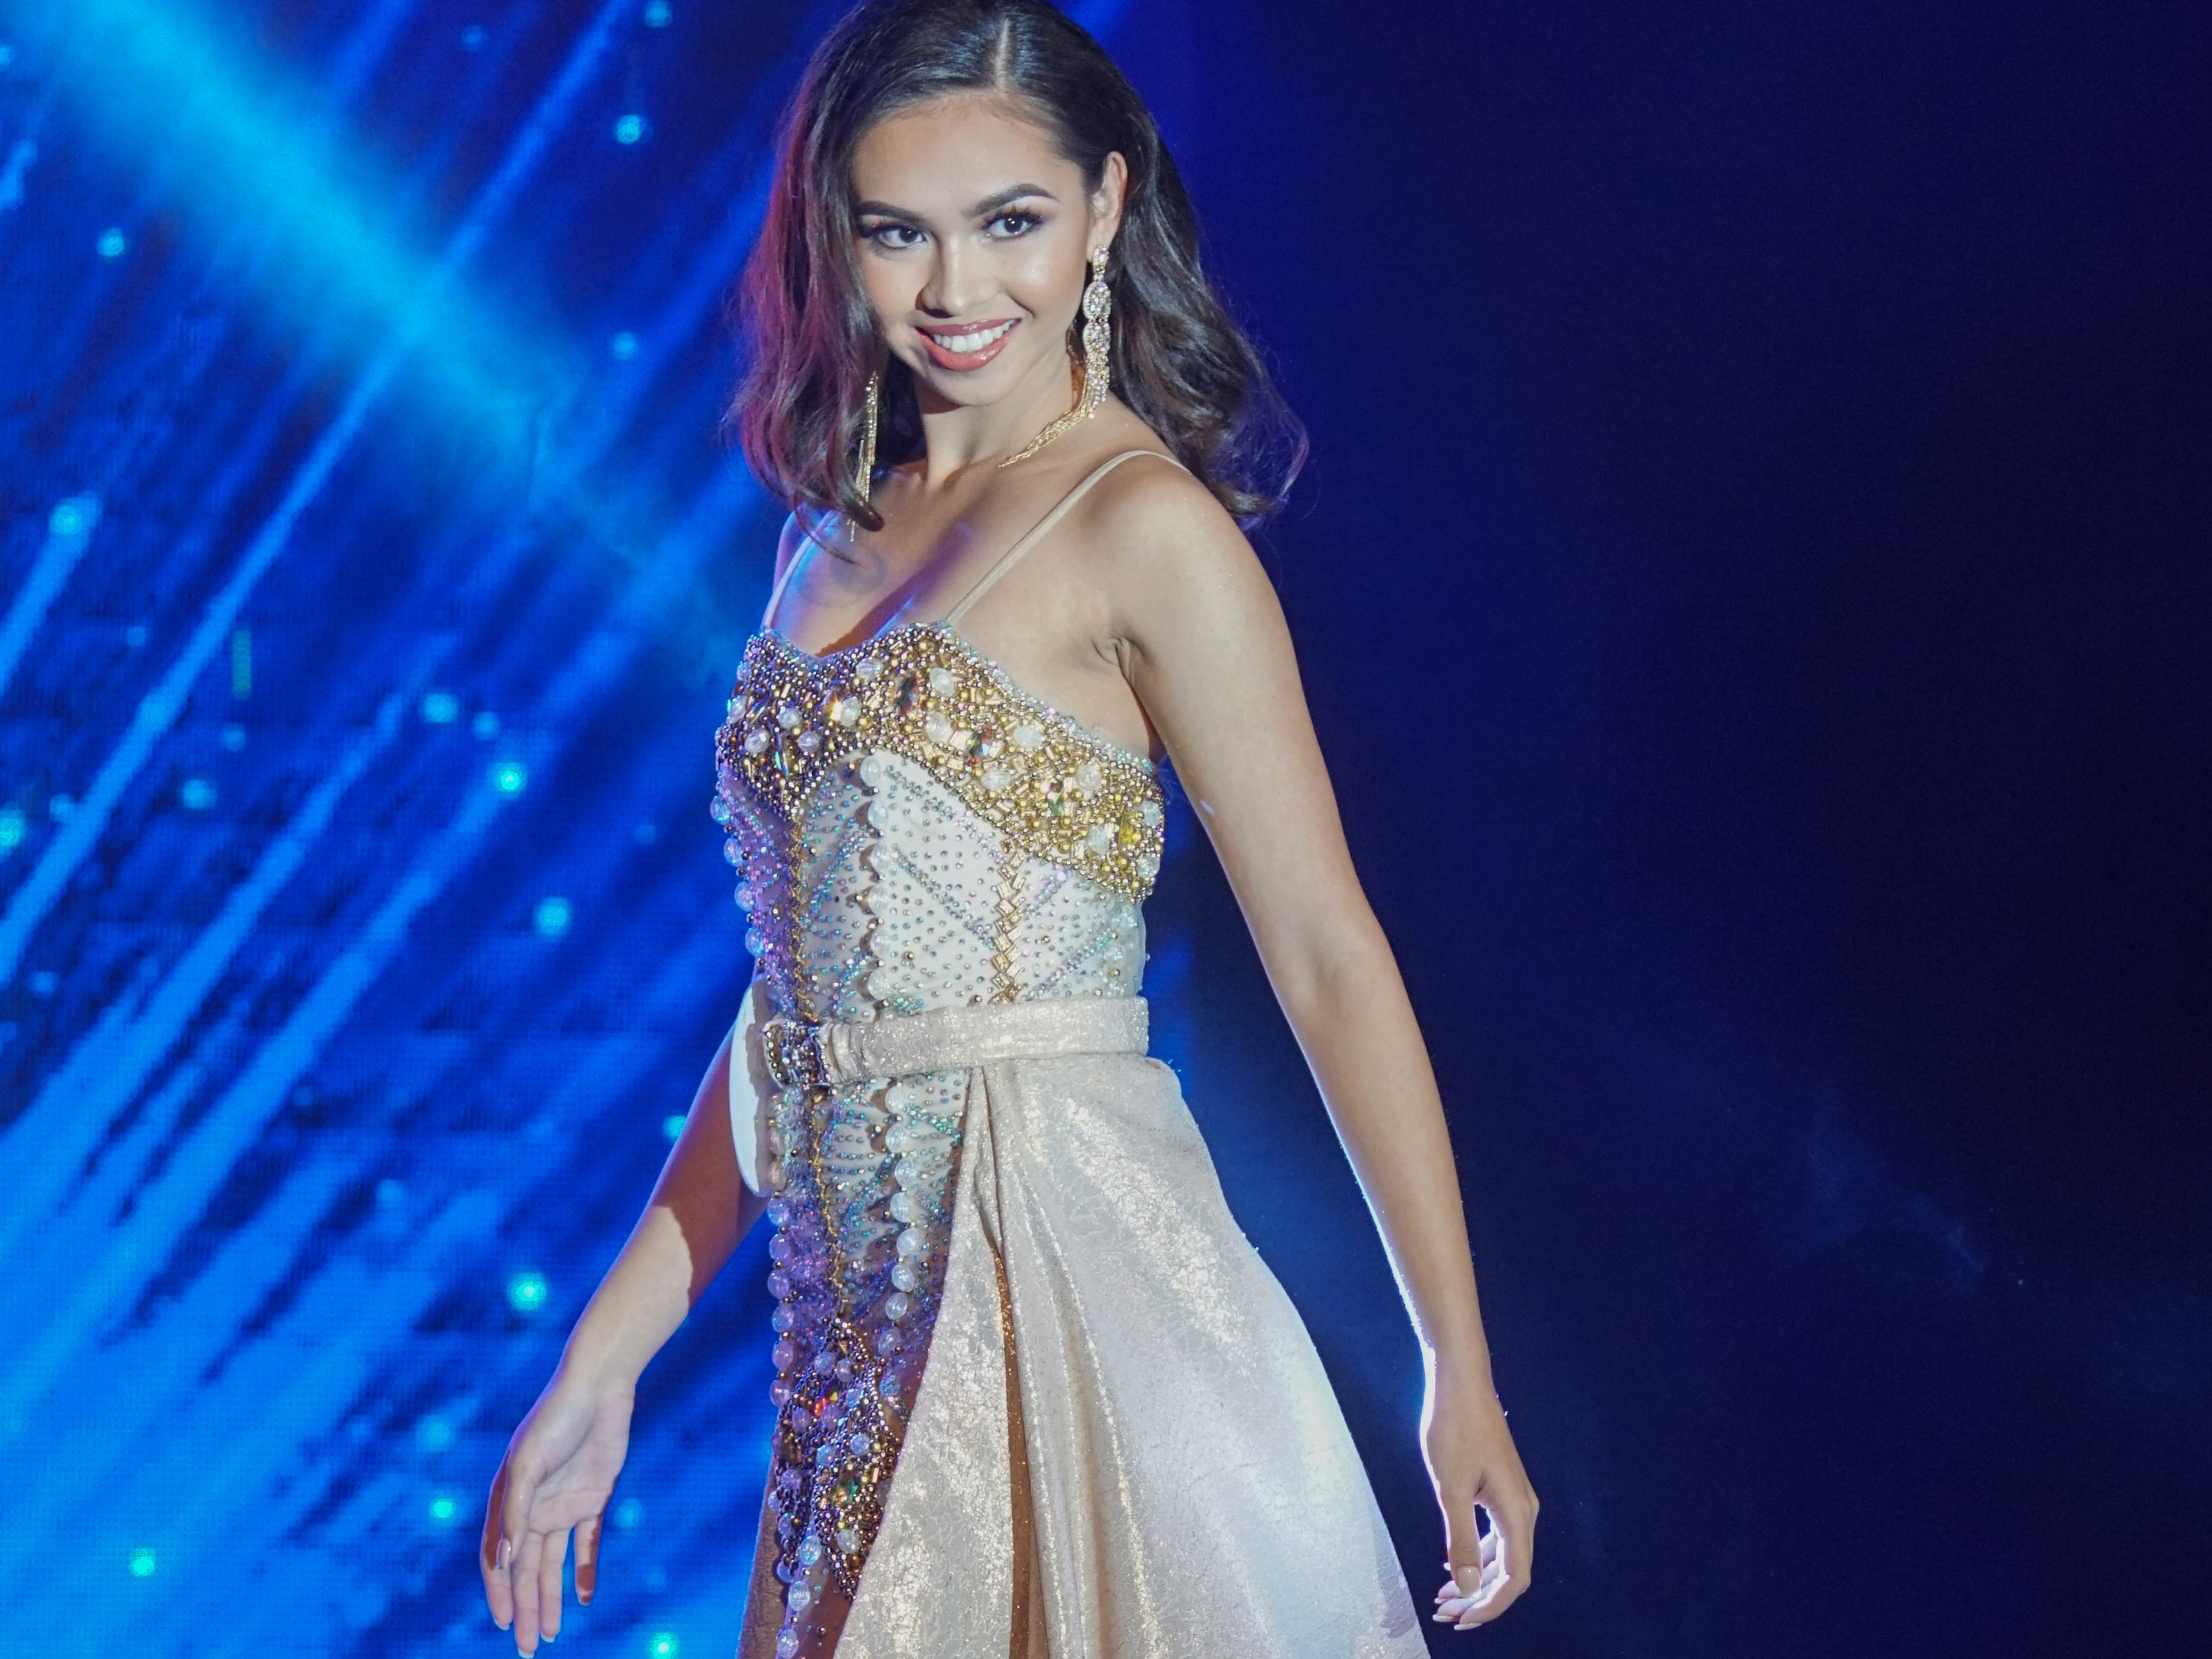 Cyndal Abad, 18, from Dededo, contestant #5 in her evening gown during the Miss World Guam pageant held at Sheraton Laguna Guam Resort.